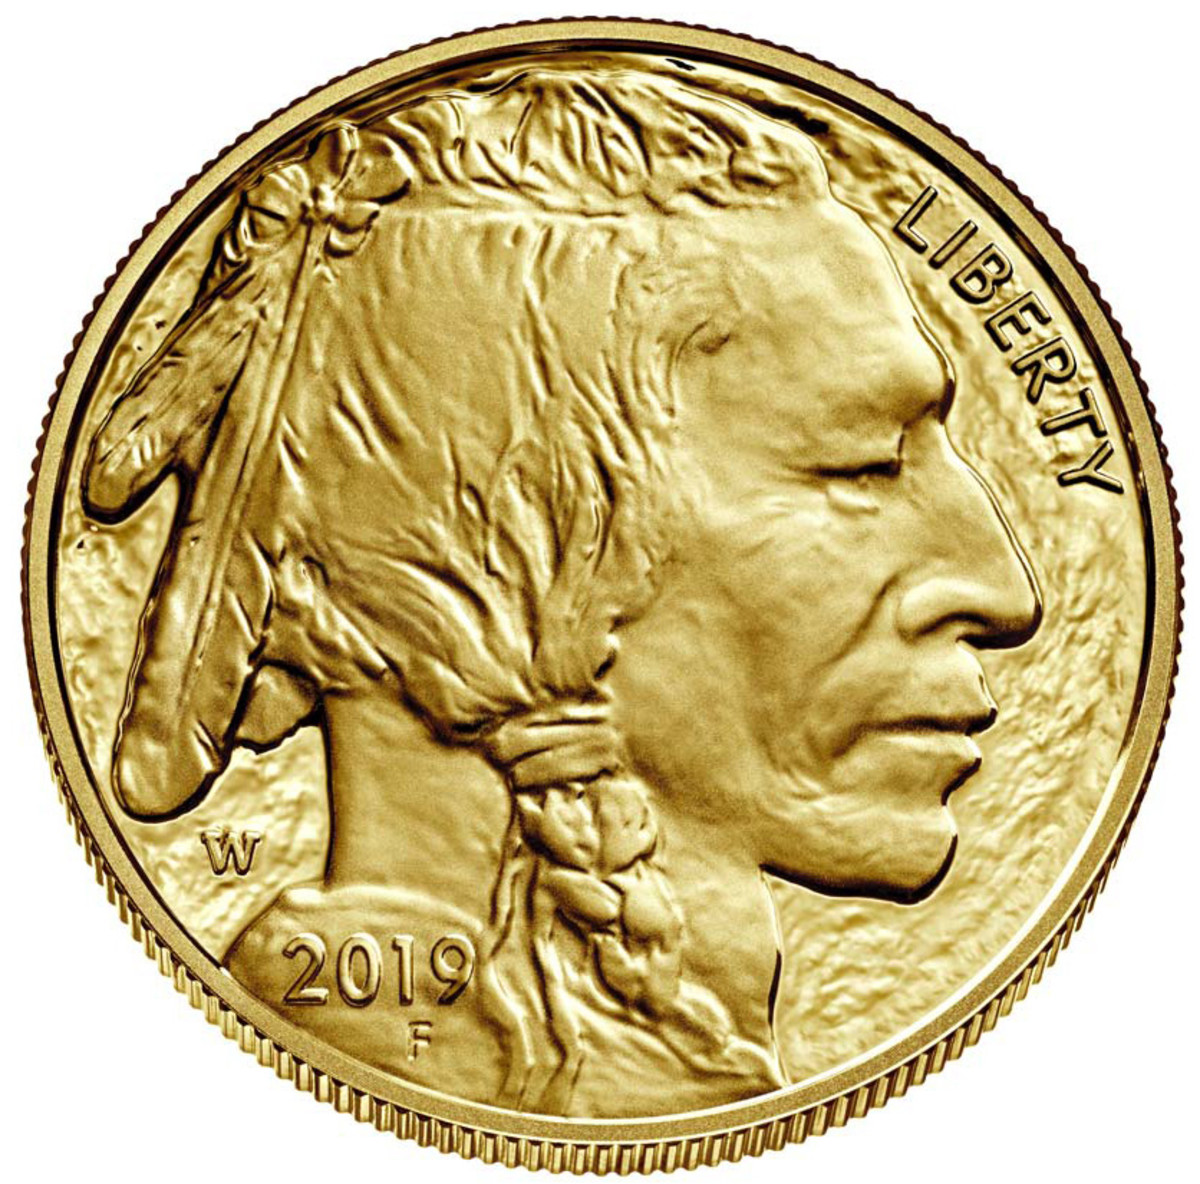 American Buffalo gold coin. (Image courtesy U.S. Mint.)